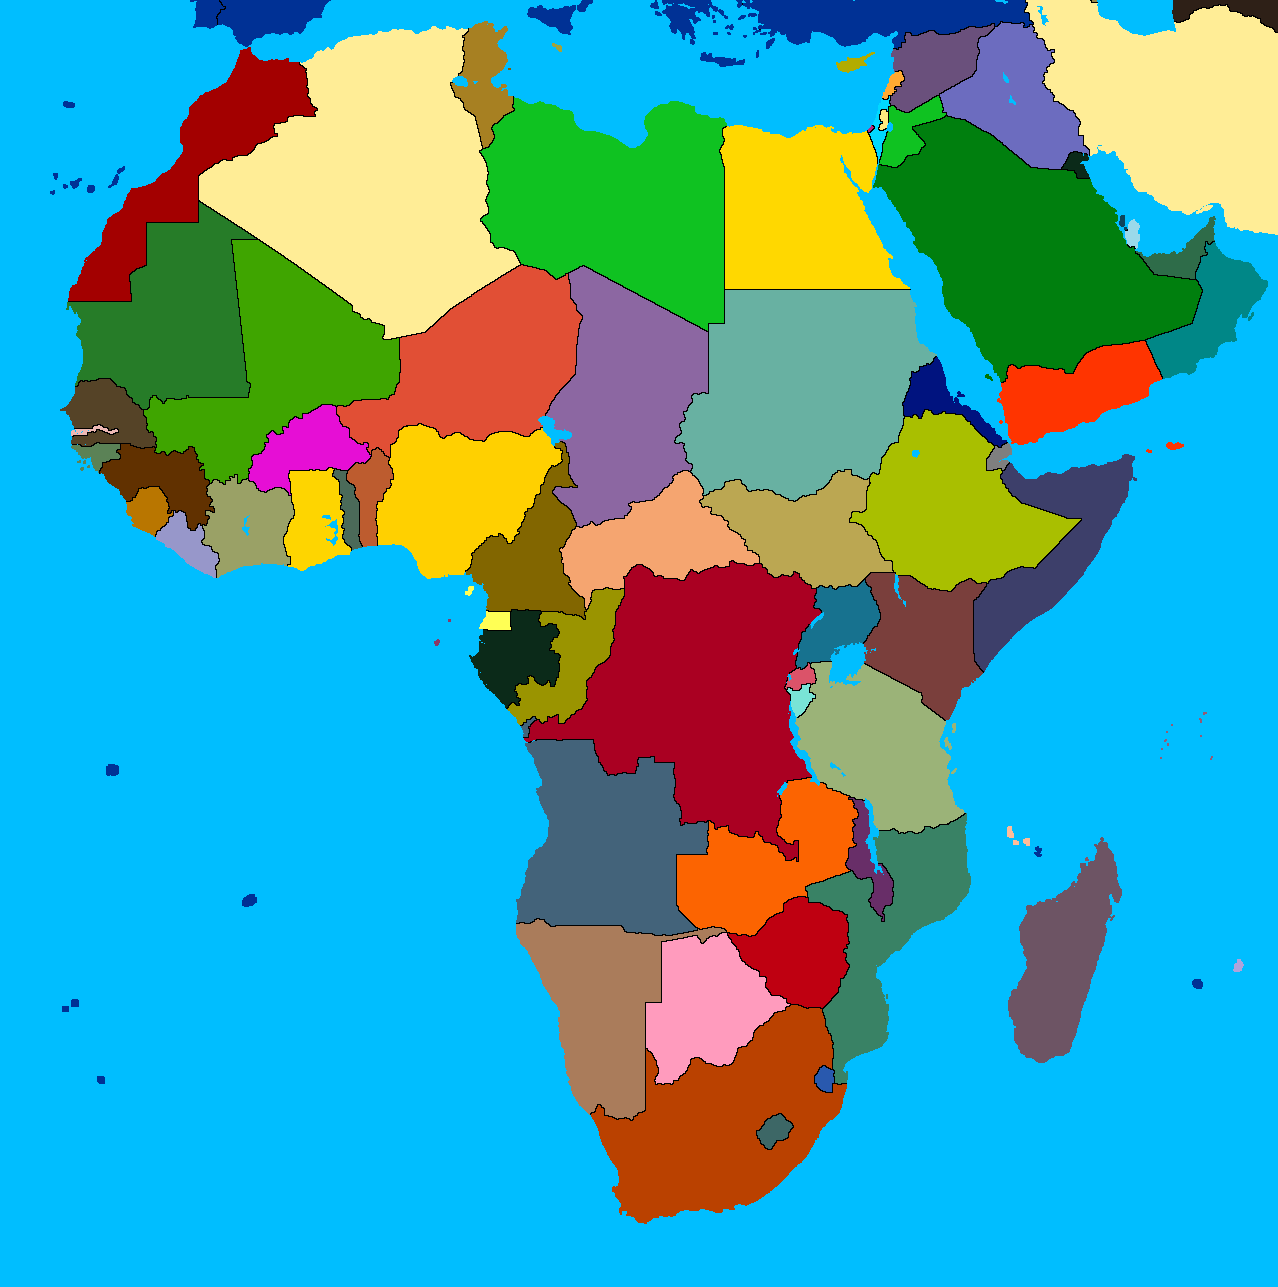 africa map with no names